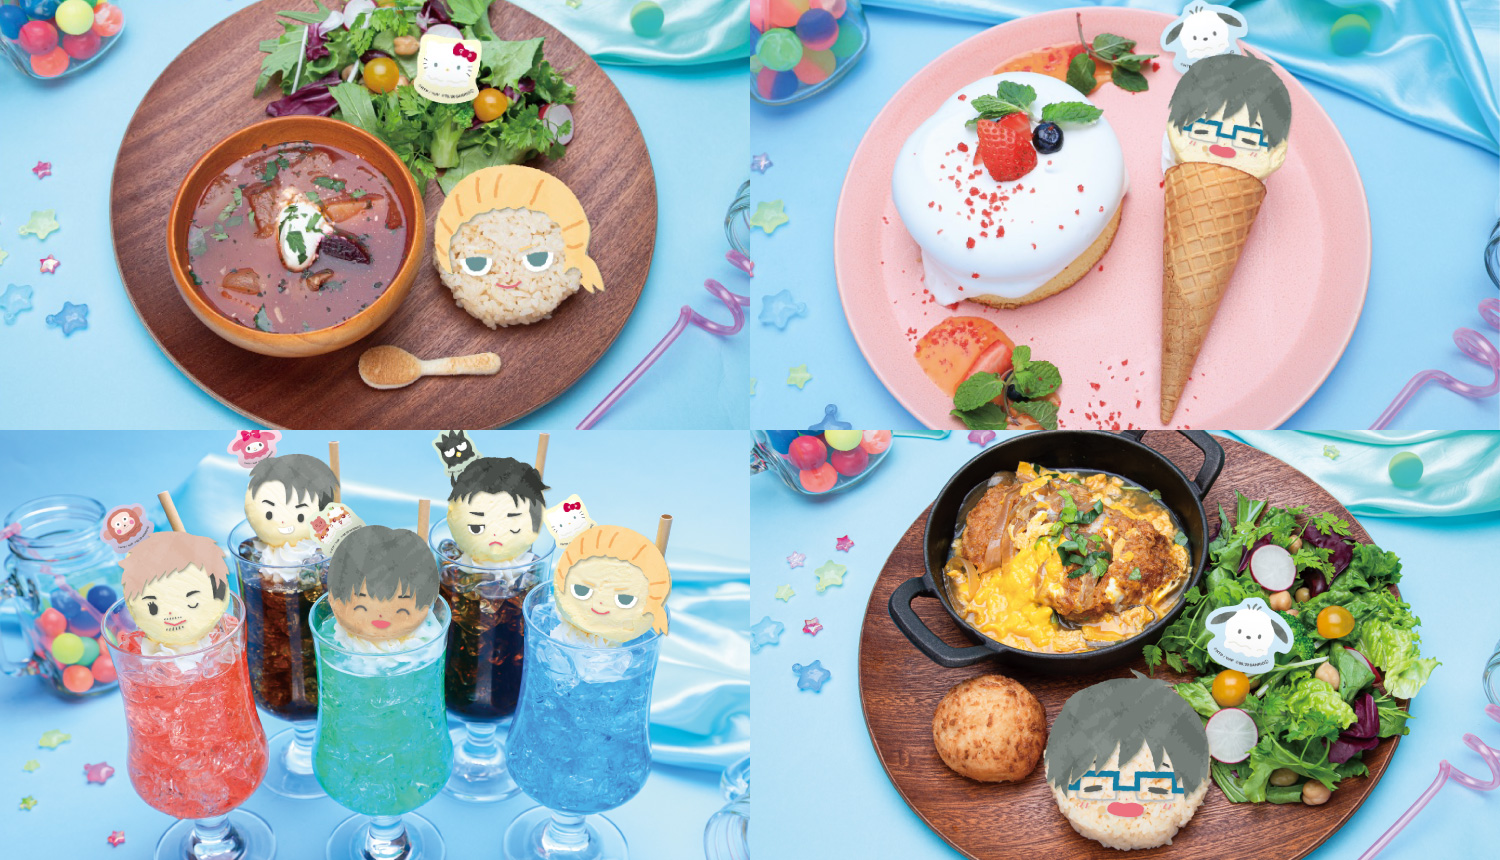 Yuri-on-Ice.Sanrio-characters-Cafe-2020-ユーリ!!!-on-ICEサンリオカフェ